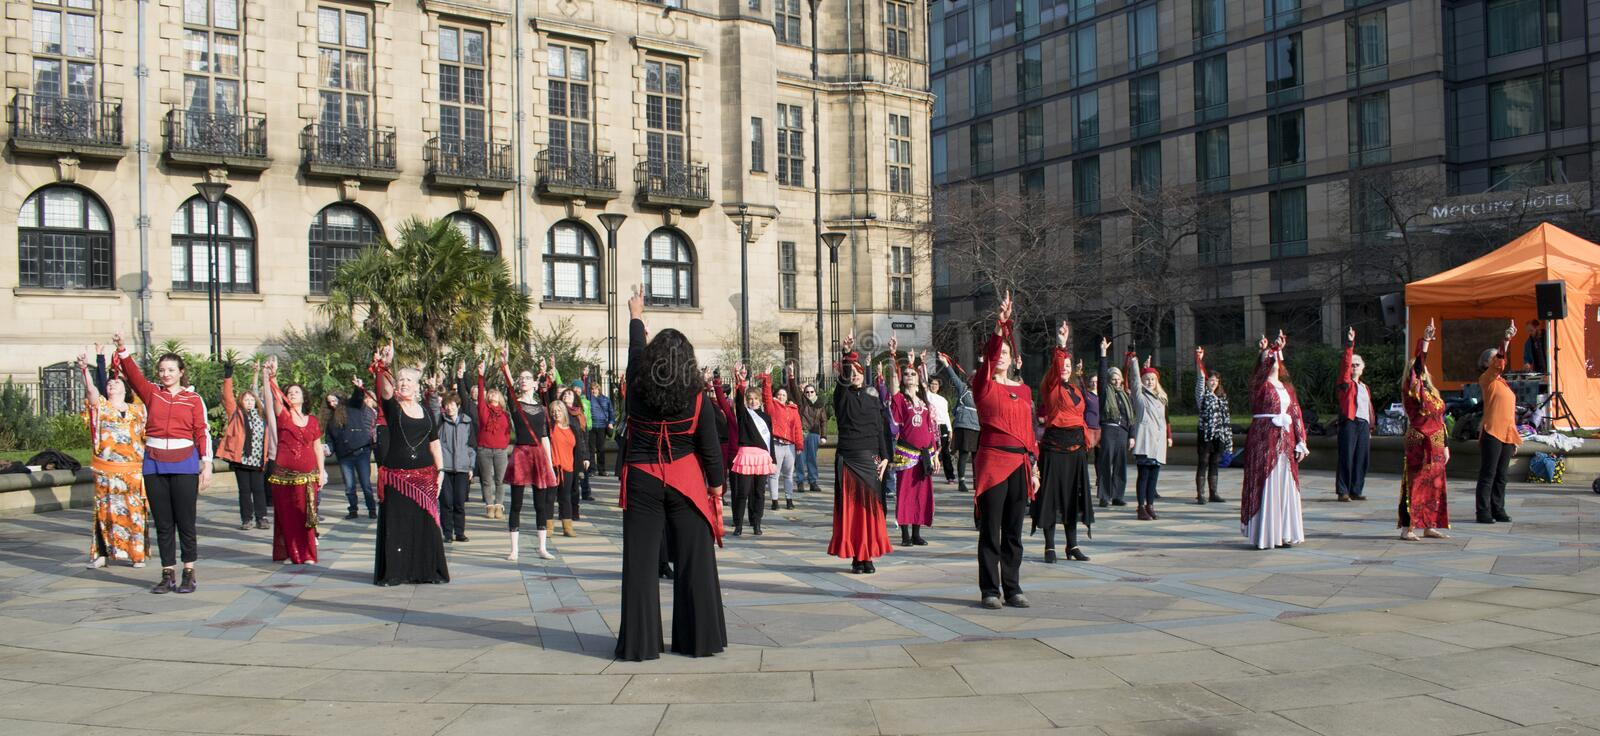 One Billion Rising Flash Mob Dance In Sheffield. stock photography